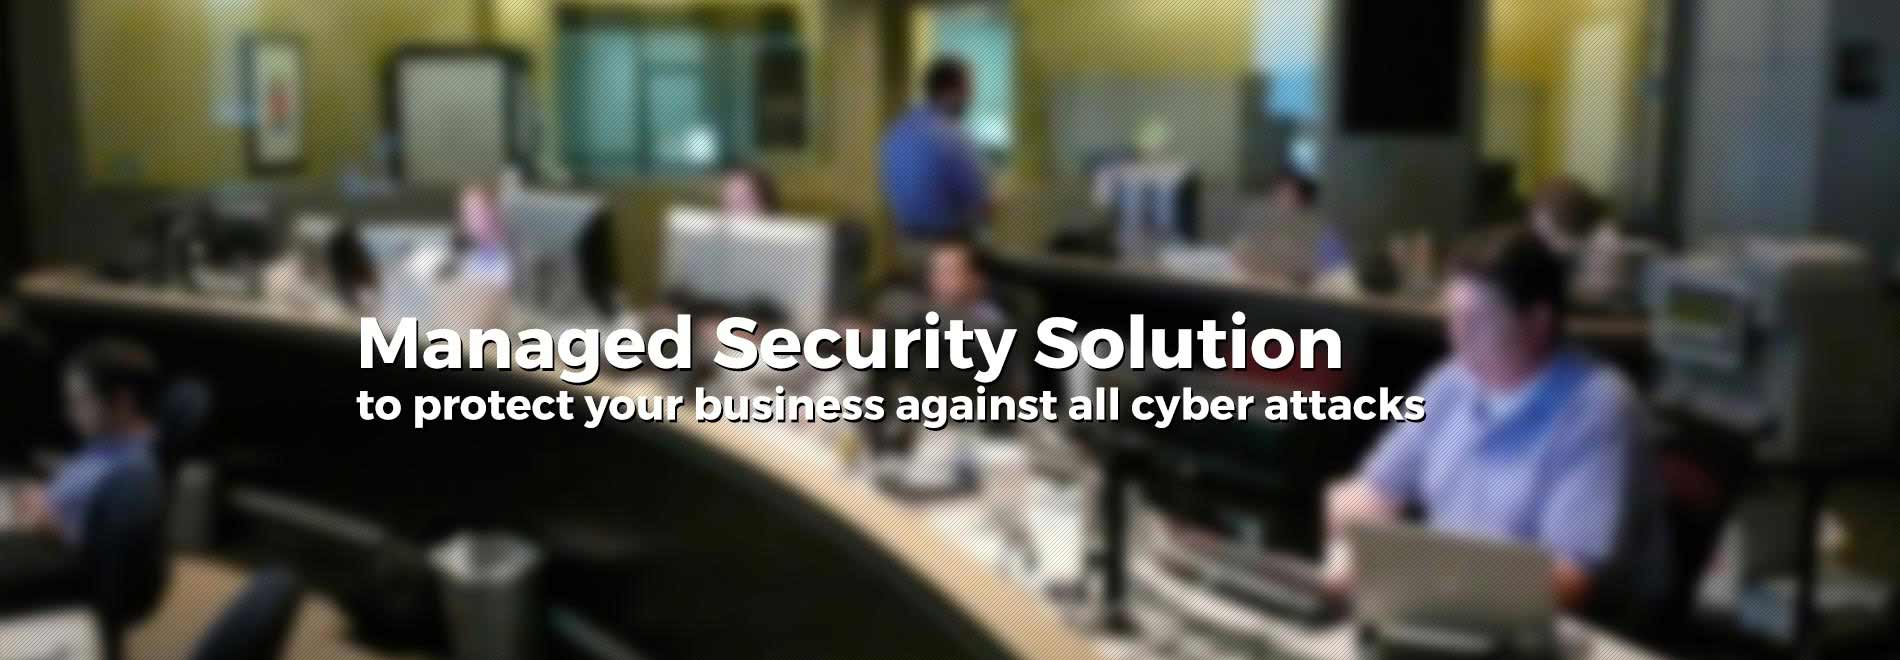 Cyber Security Services Dallas